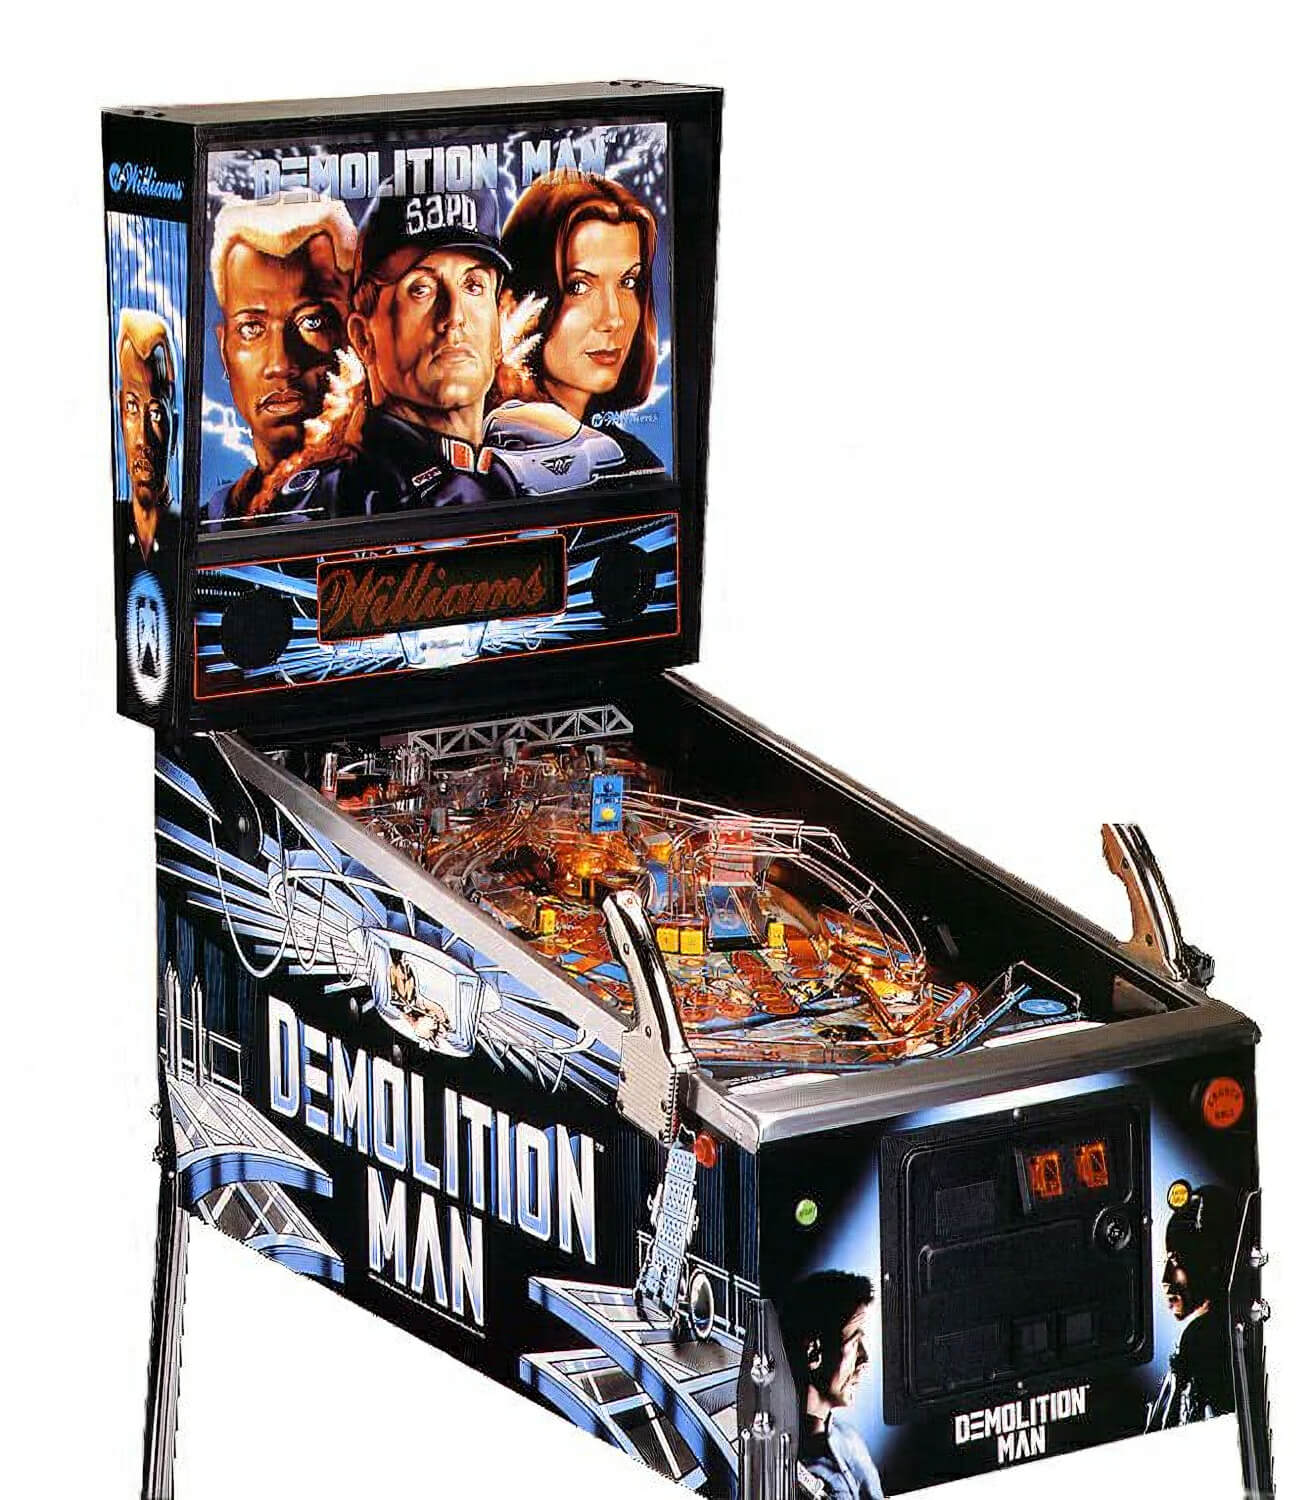 Demolition Man Pinball Machine Liberty Games : 1286demolition man pinball from libertygames.co.uk size 662 x 758 jpeg 111kB